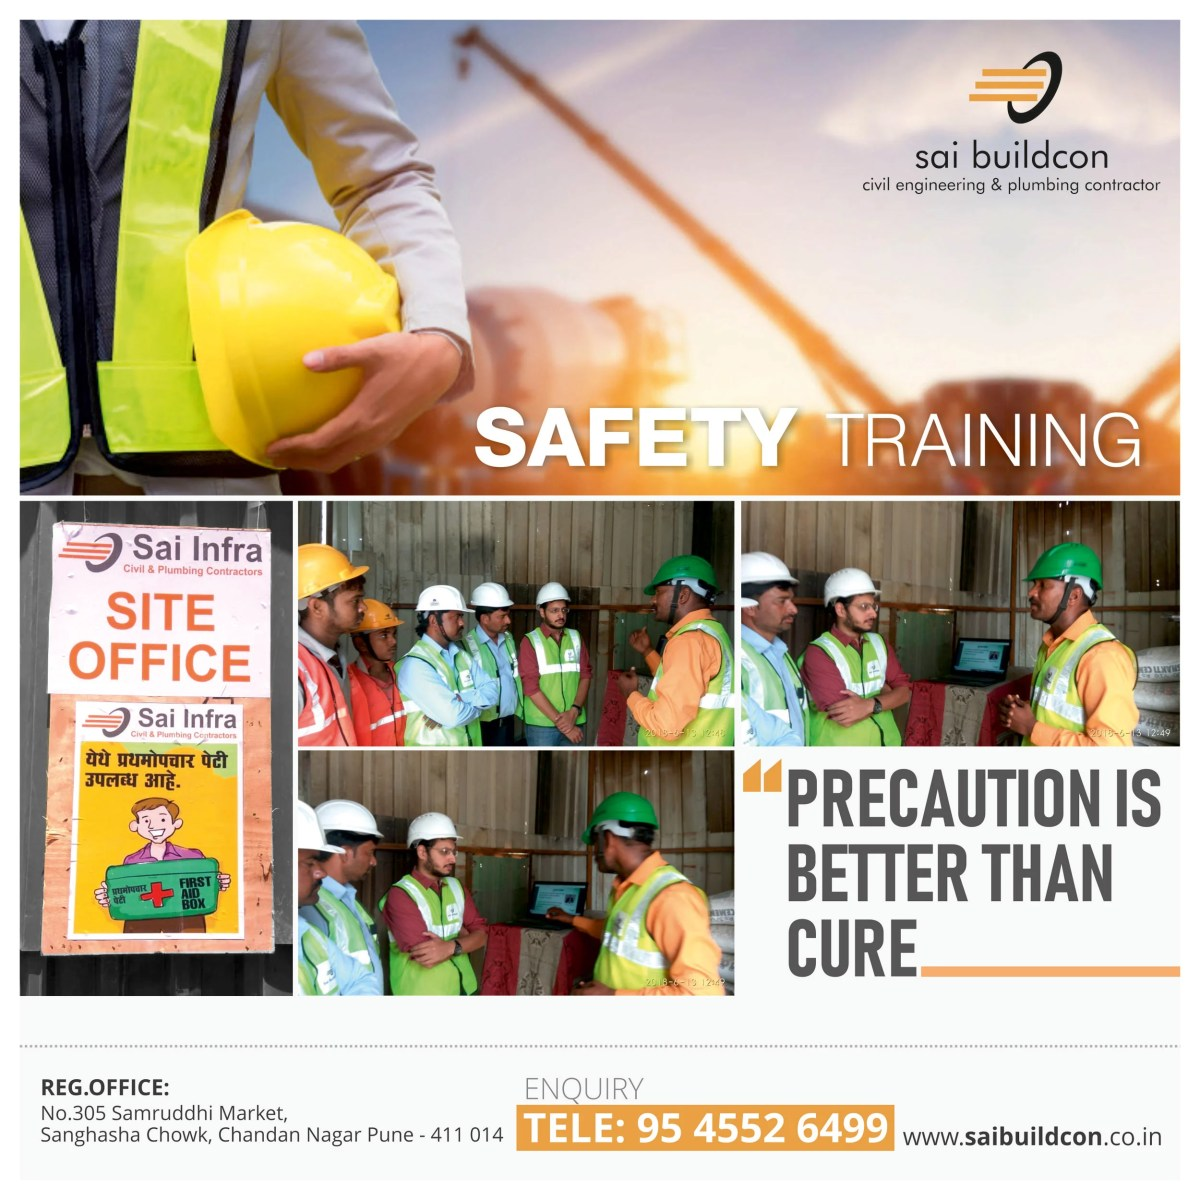 A word of safety well shared during the safety training routine with a team @godrejinfinity by #saibuildcon #precautionisbetterthancure